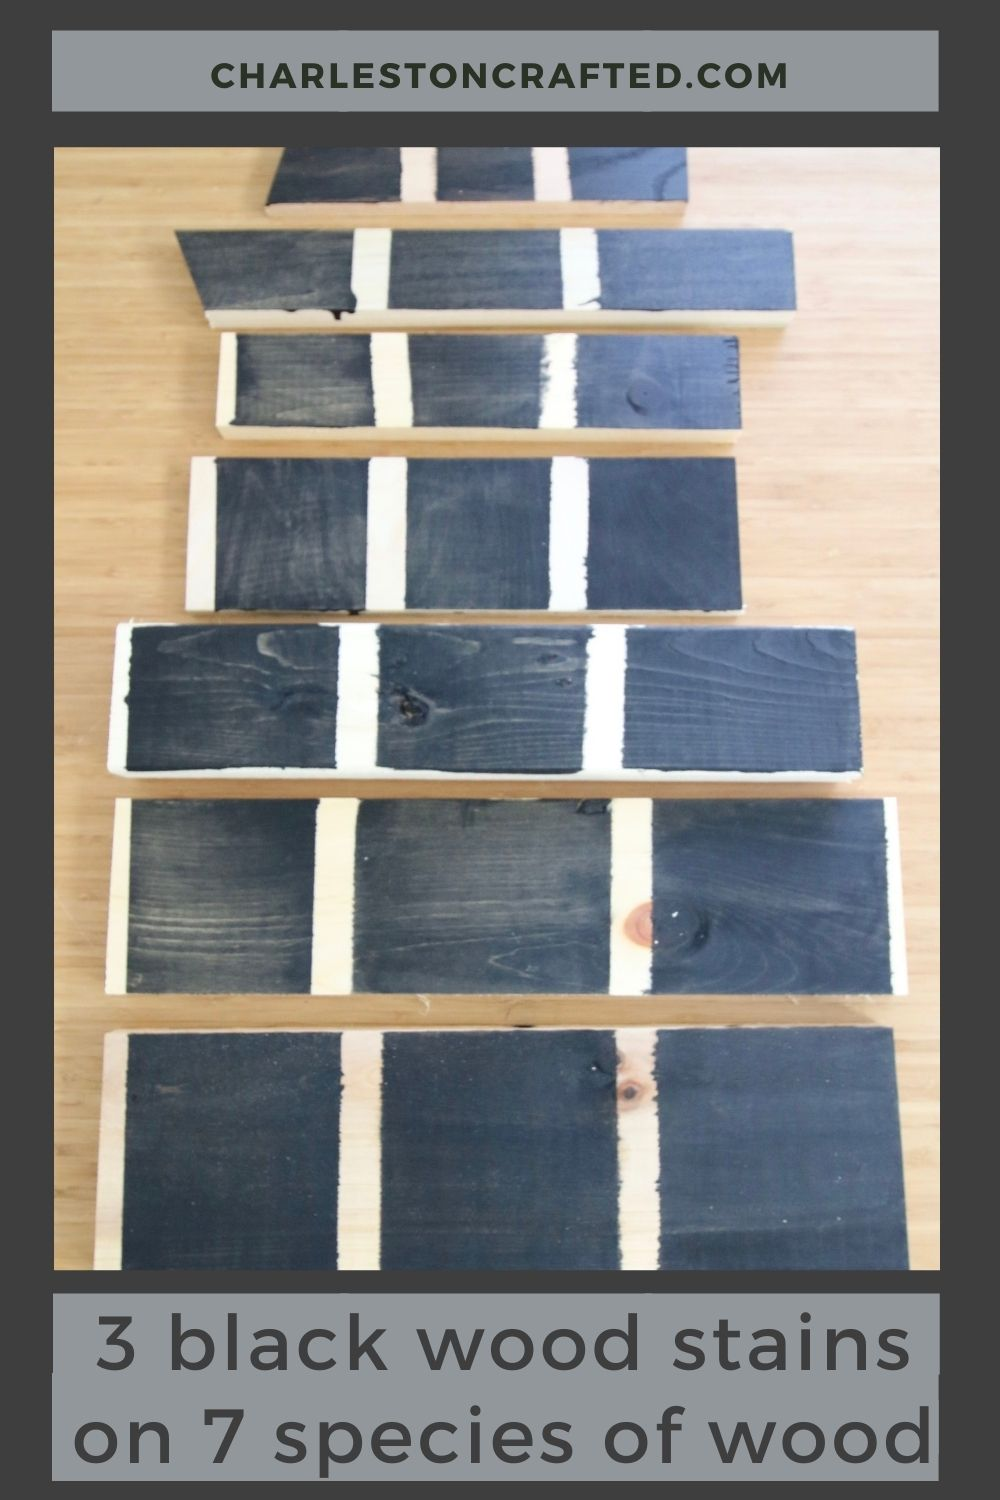 The 3 Best Black Wood Stain Colors - How To Stain A Wooden Table Black